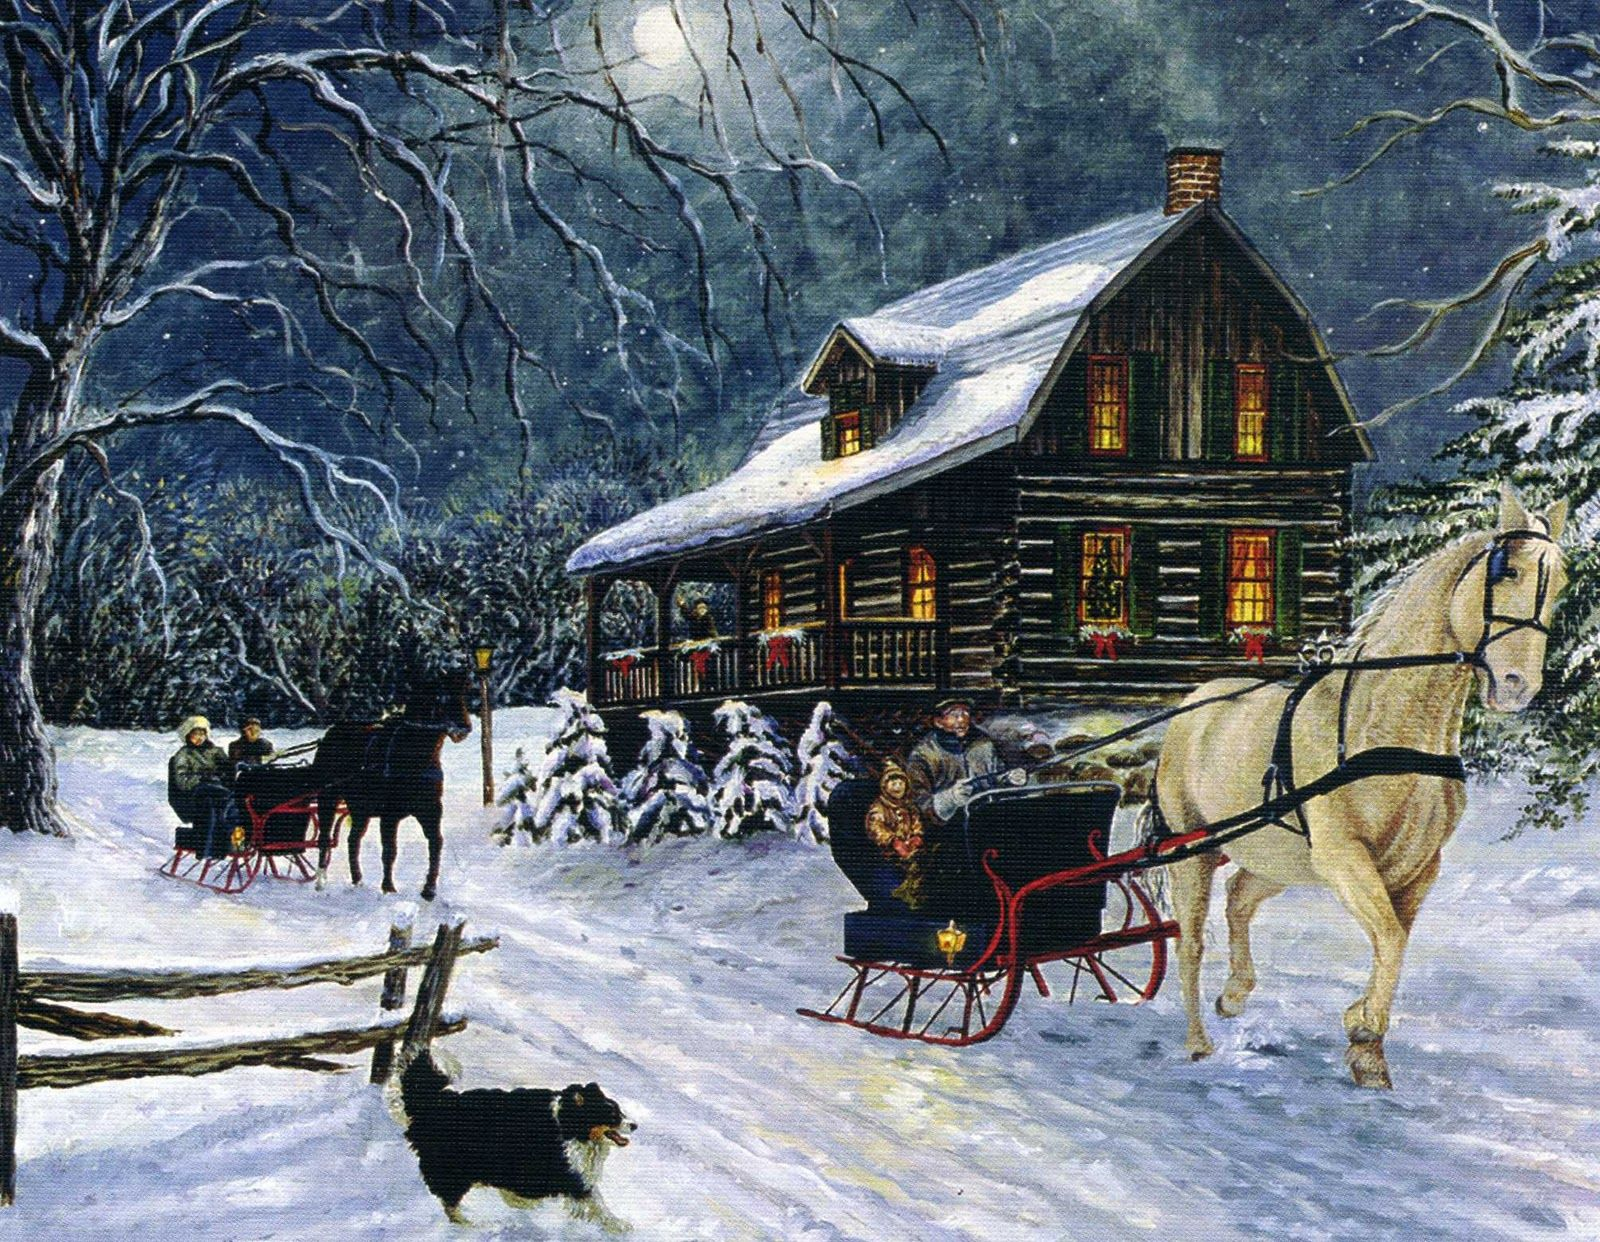 Beautiful christmas snow pictures the snow on christmas day in - I Heard The Bells On Christmas Day Their Old Familiar Carols Play And Wild And